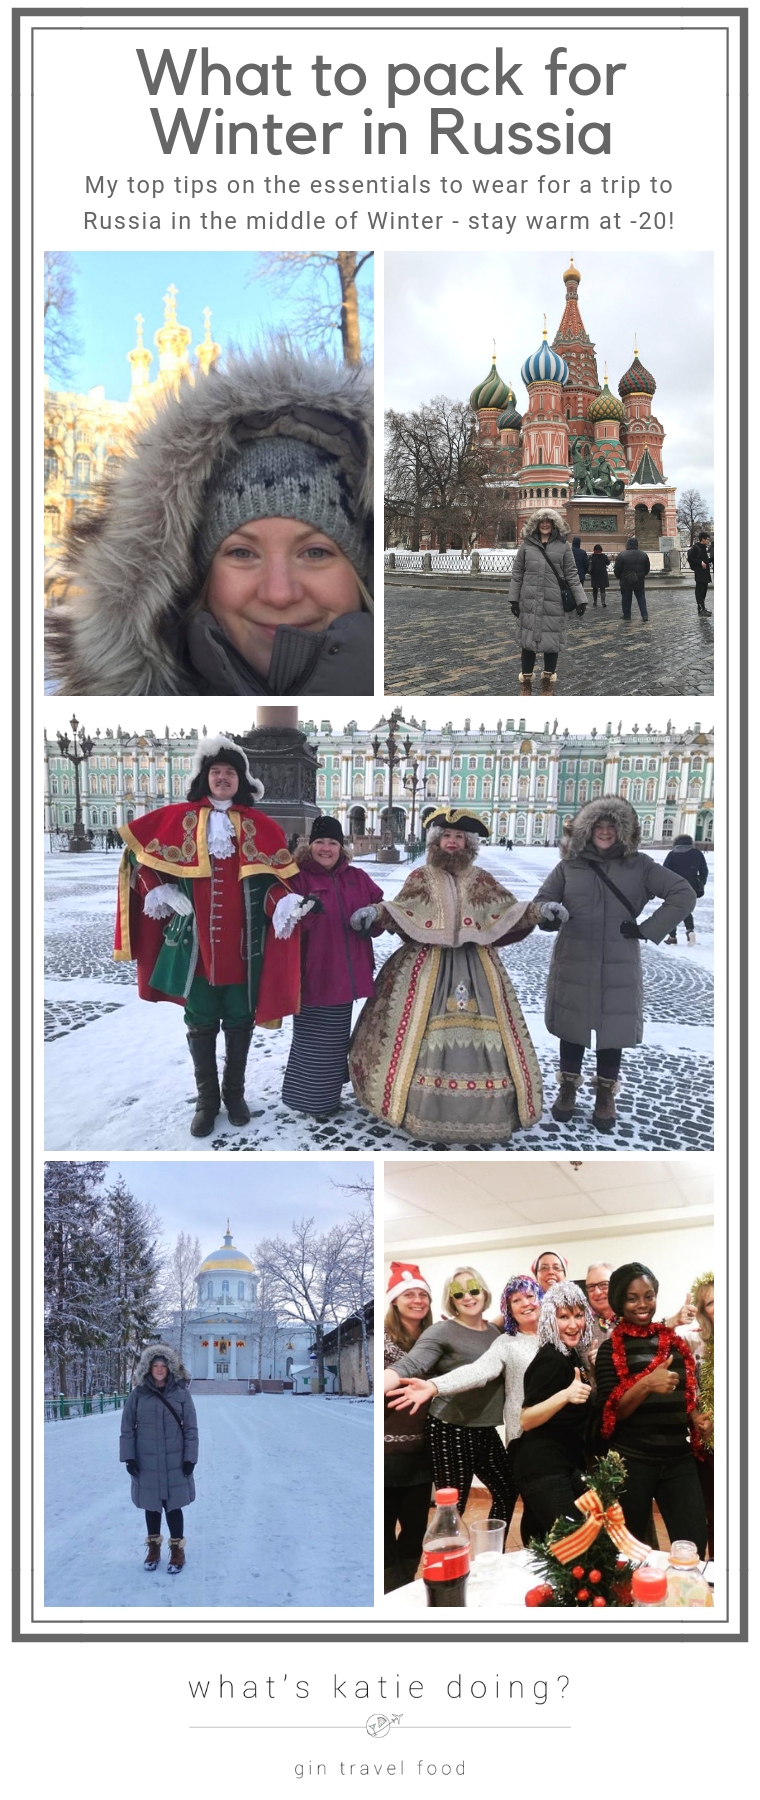 What to pack for Winter in Russia - all my top tips to stay warm at -20!